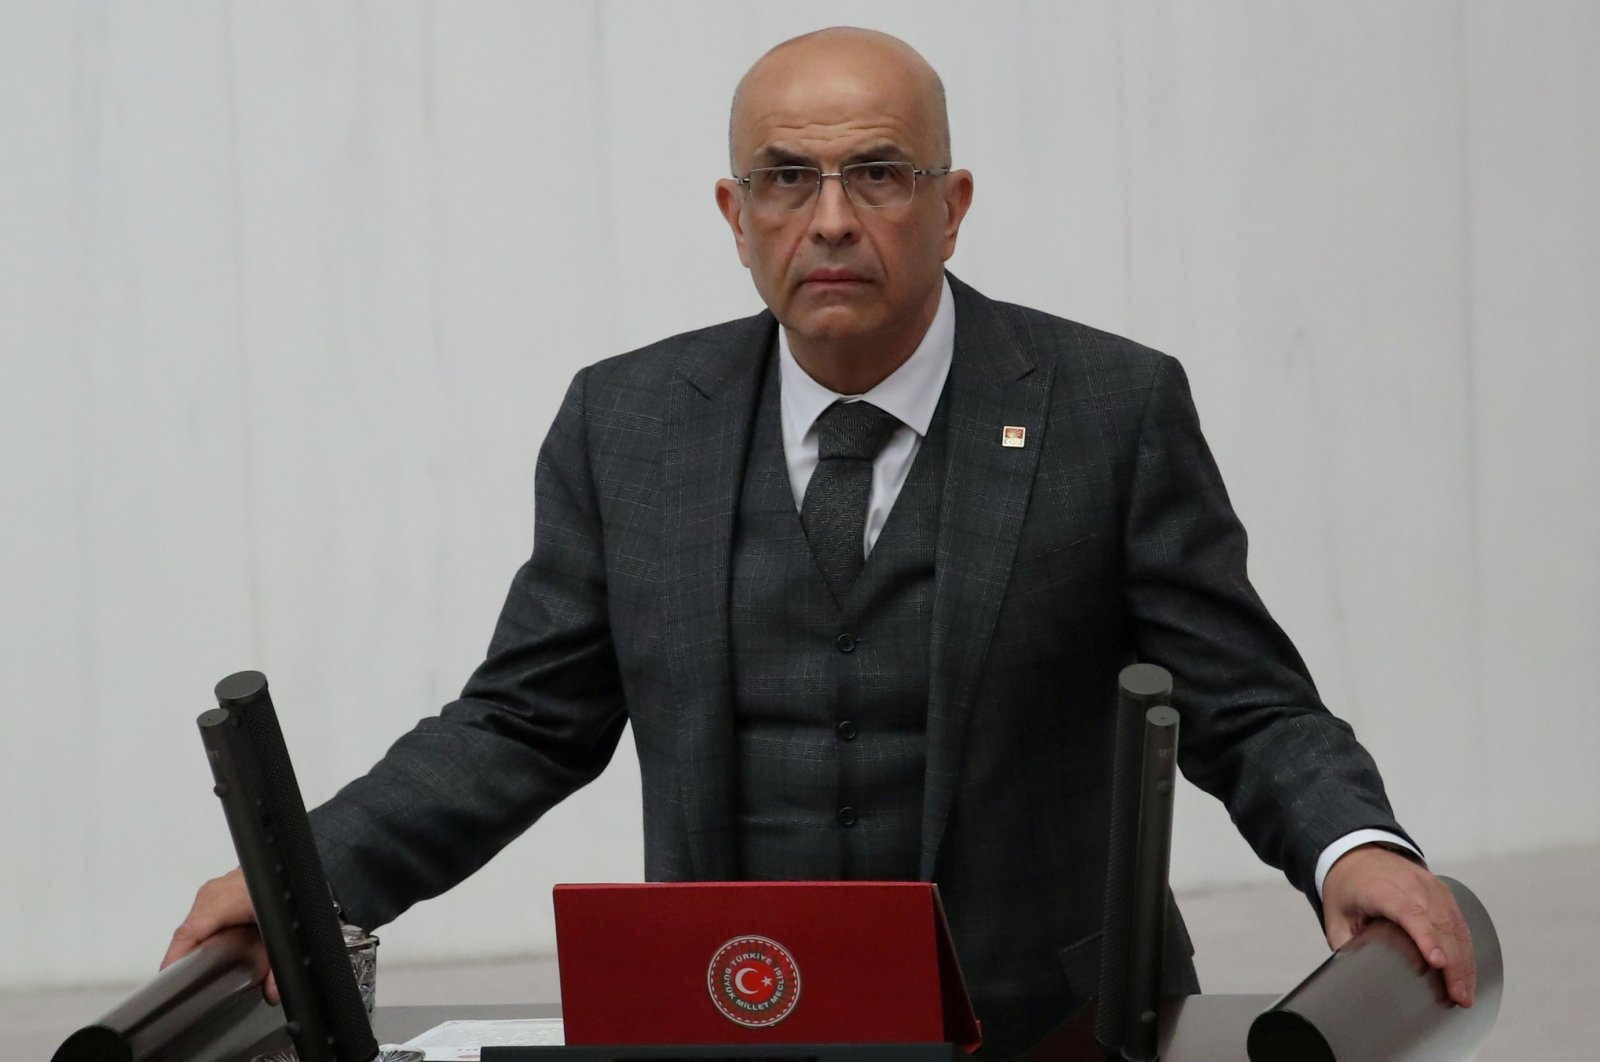 Enis Berberoğlu, a deputy from the main opposition Republican People's Party (CHP), takes his oath at the Turkish Parliament in the capital Ankara, Turkey, Oct. 1, 2018. (Reuters Photo)